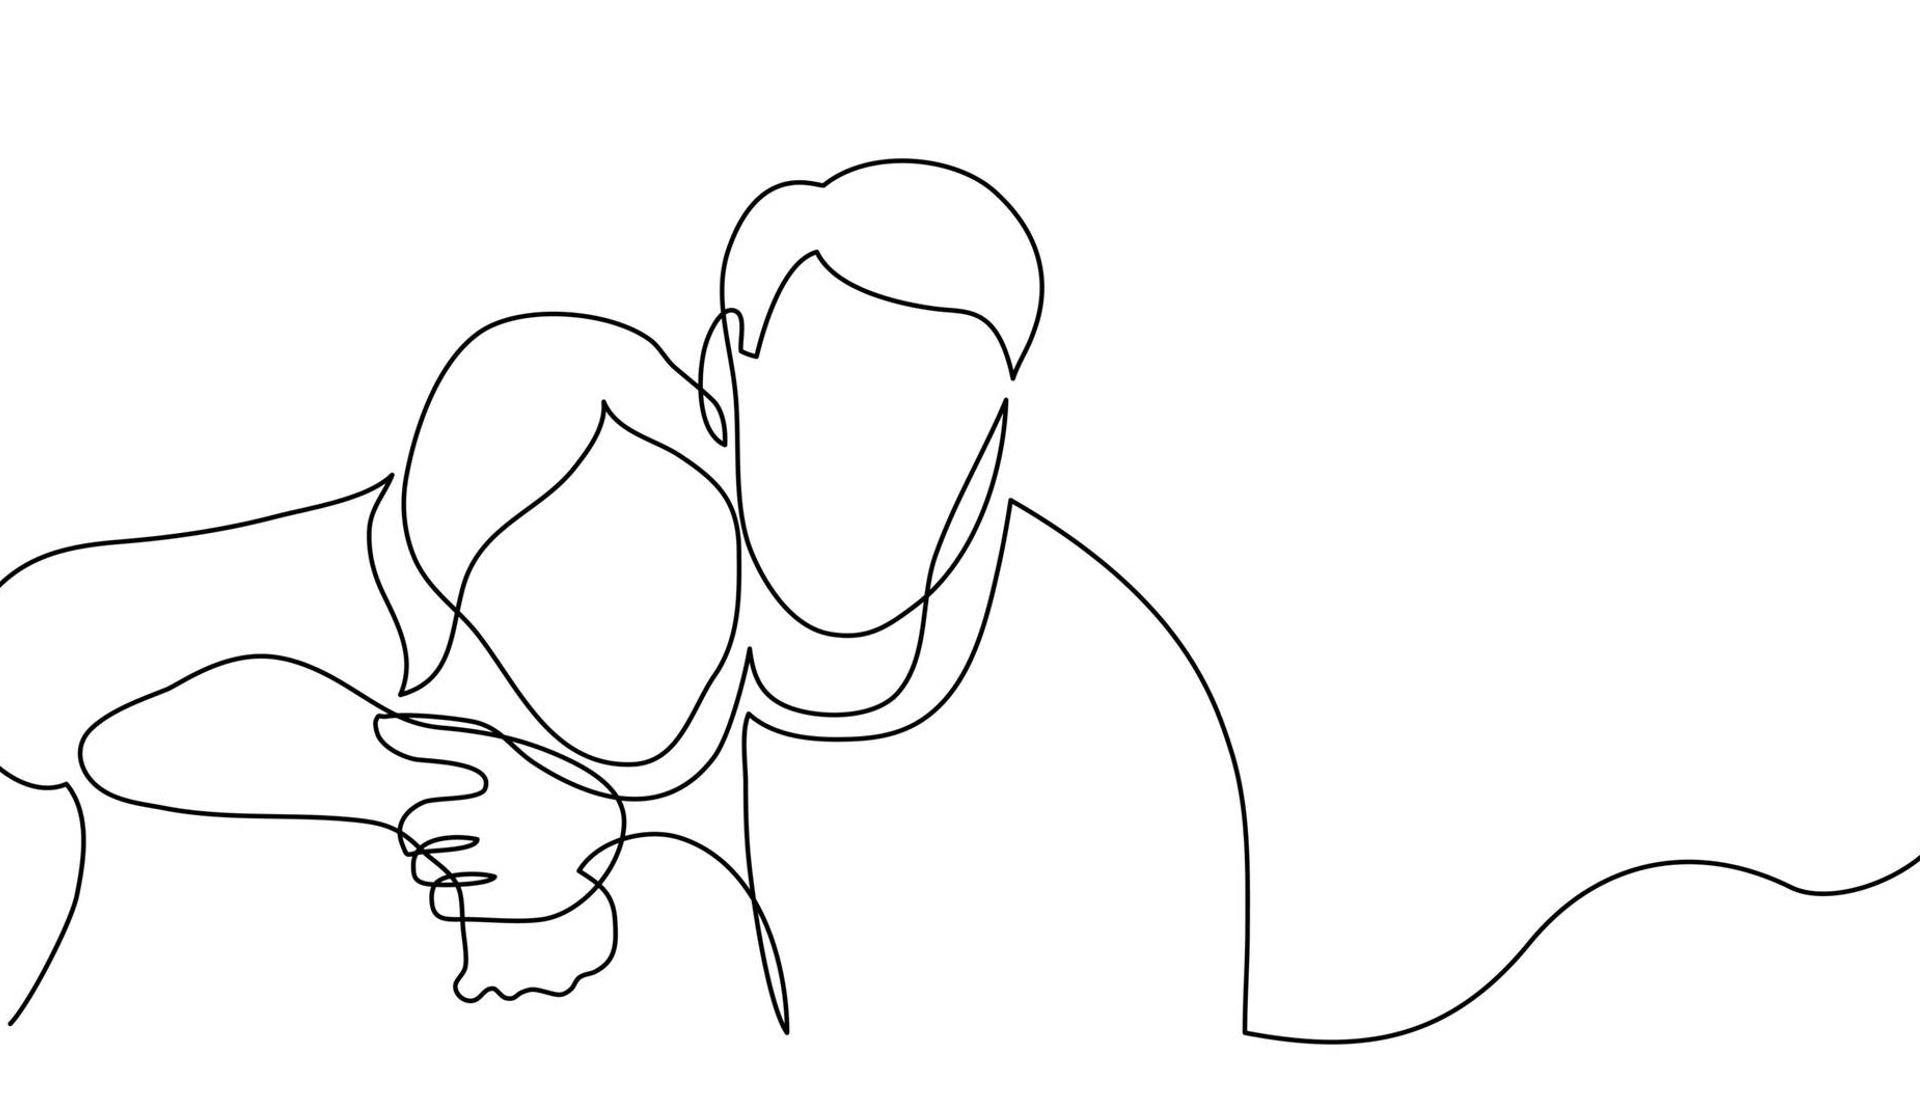 continuous line drawing of man and woman hugging each other